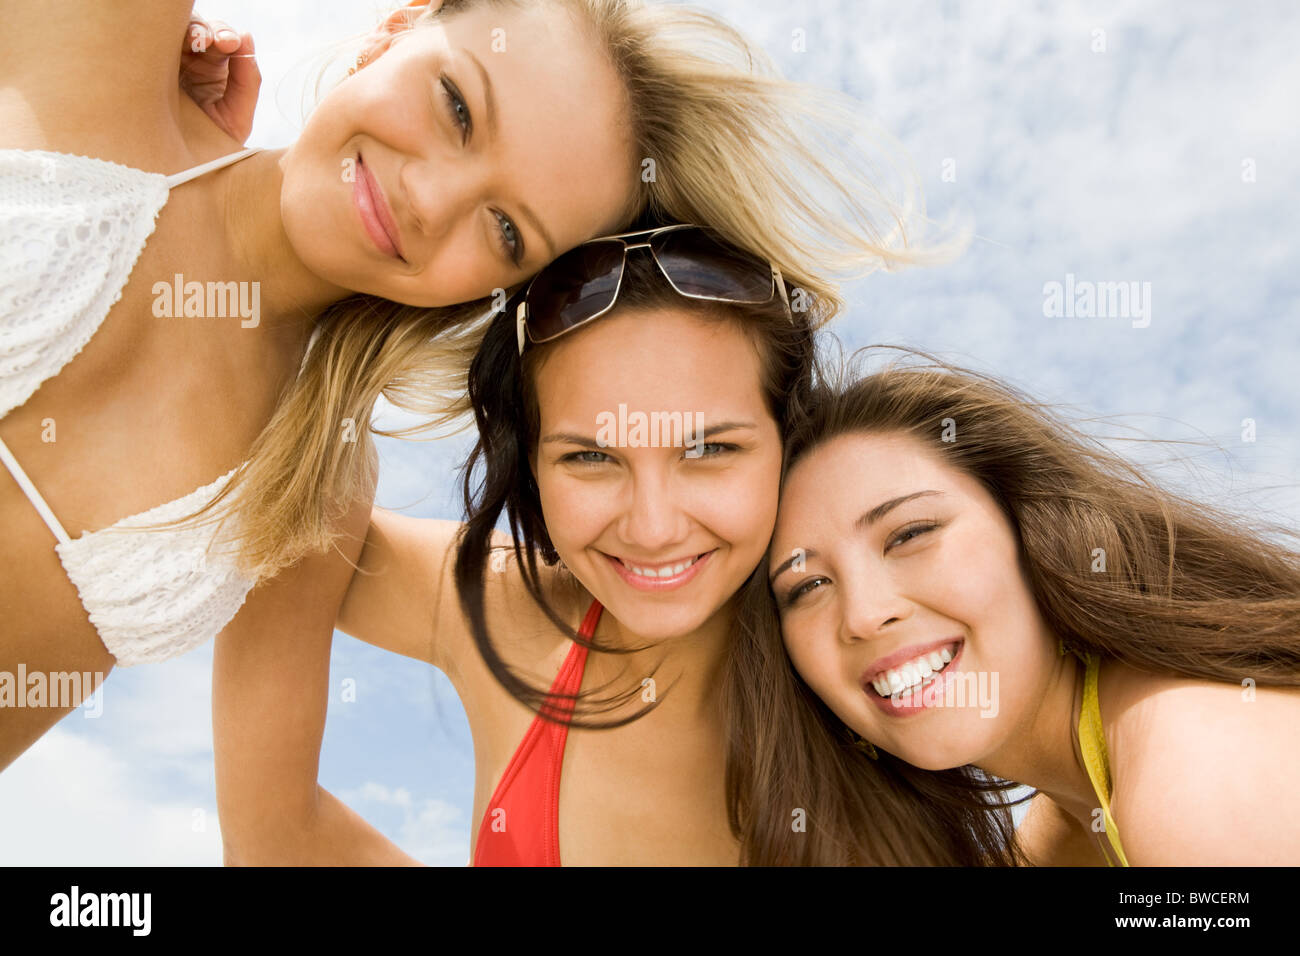 View from below of happy girls in bikini embracing each other and smiling at camera - Stock Image